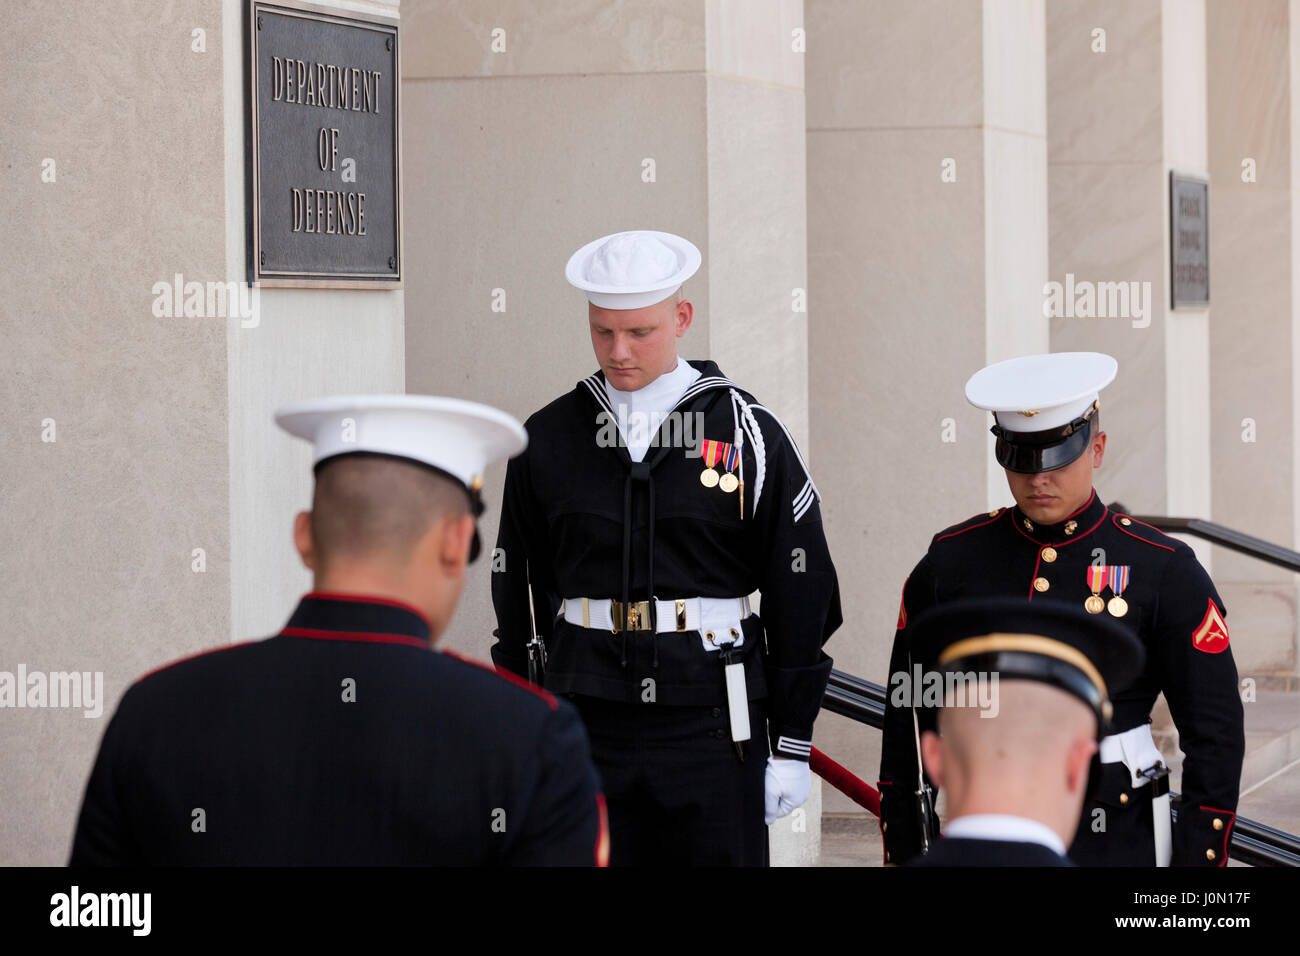 Honor cordon joint service members at Pentagon River entrance during foreign dignitary visit - Washington, DC USA - Stock Image